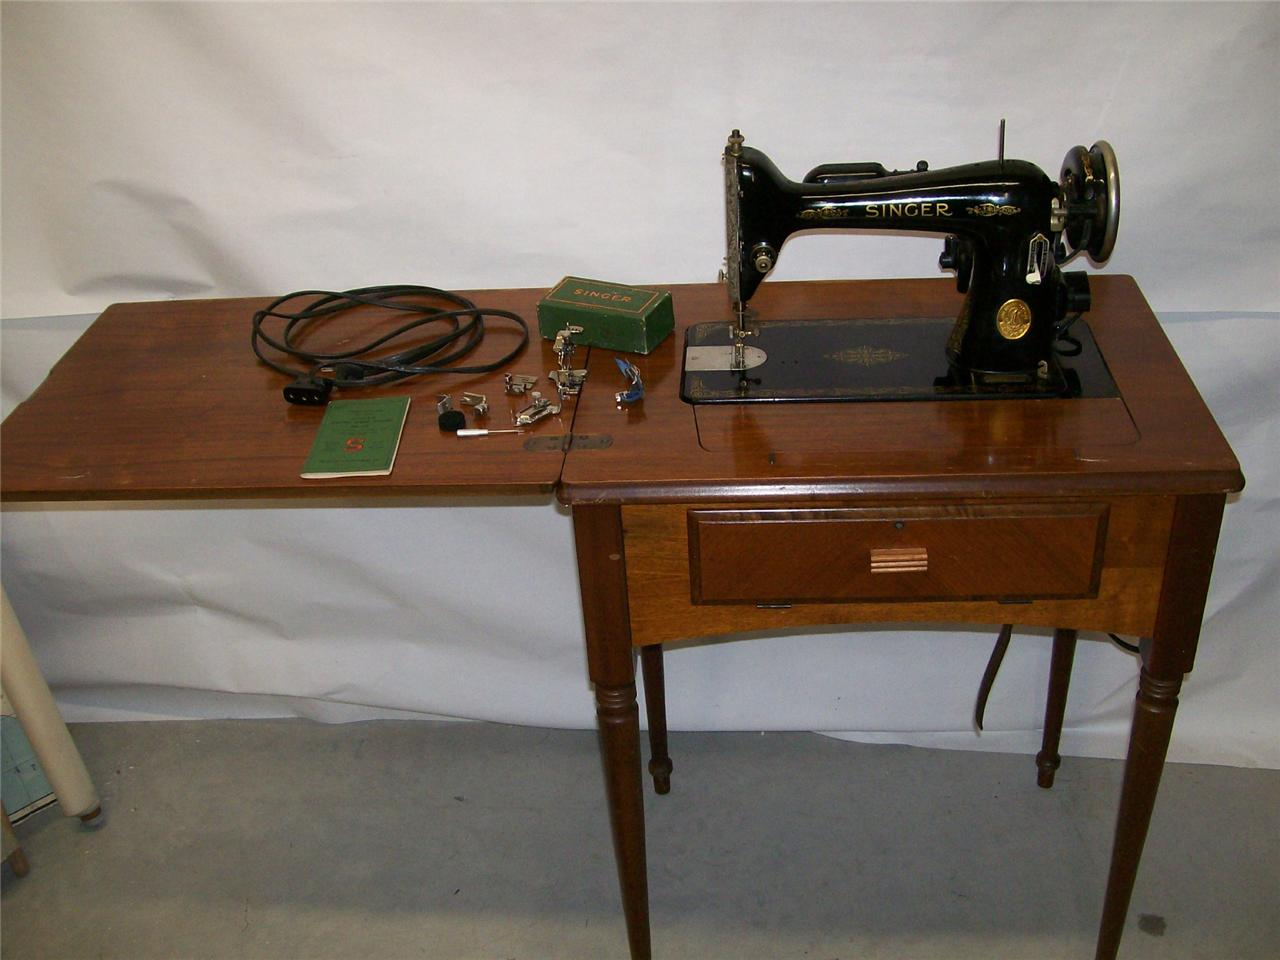 singer sewing machine model 66